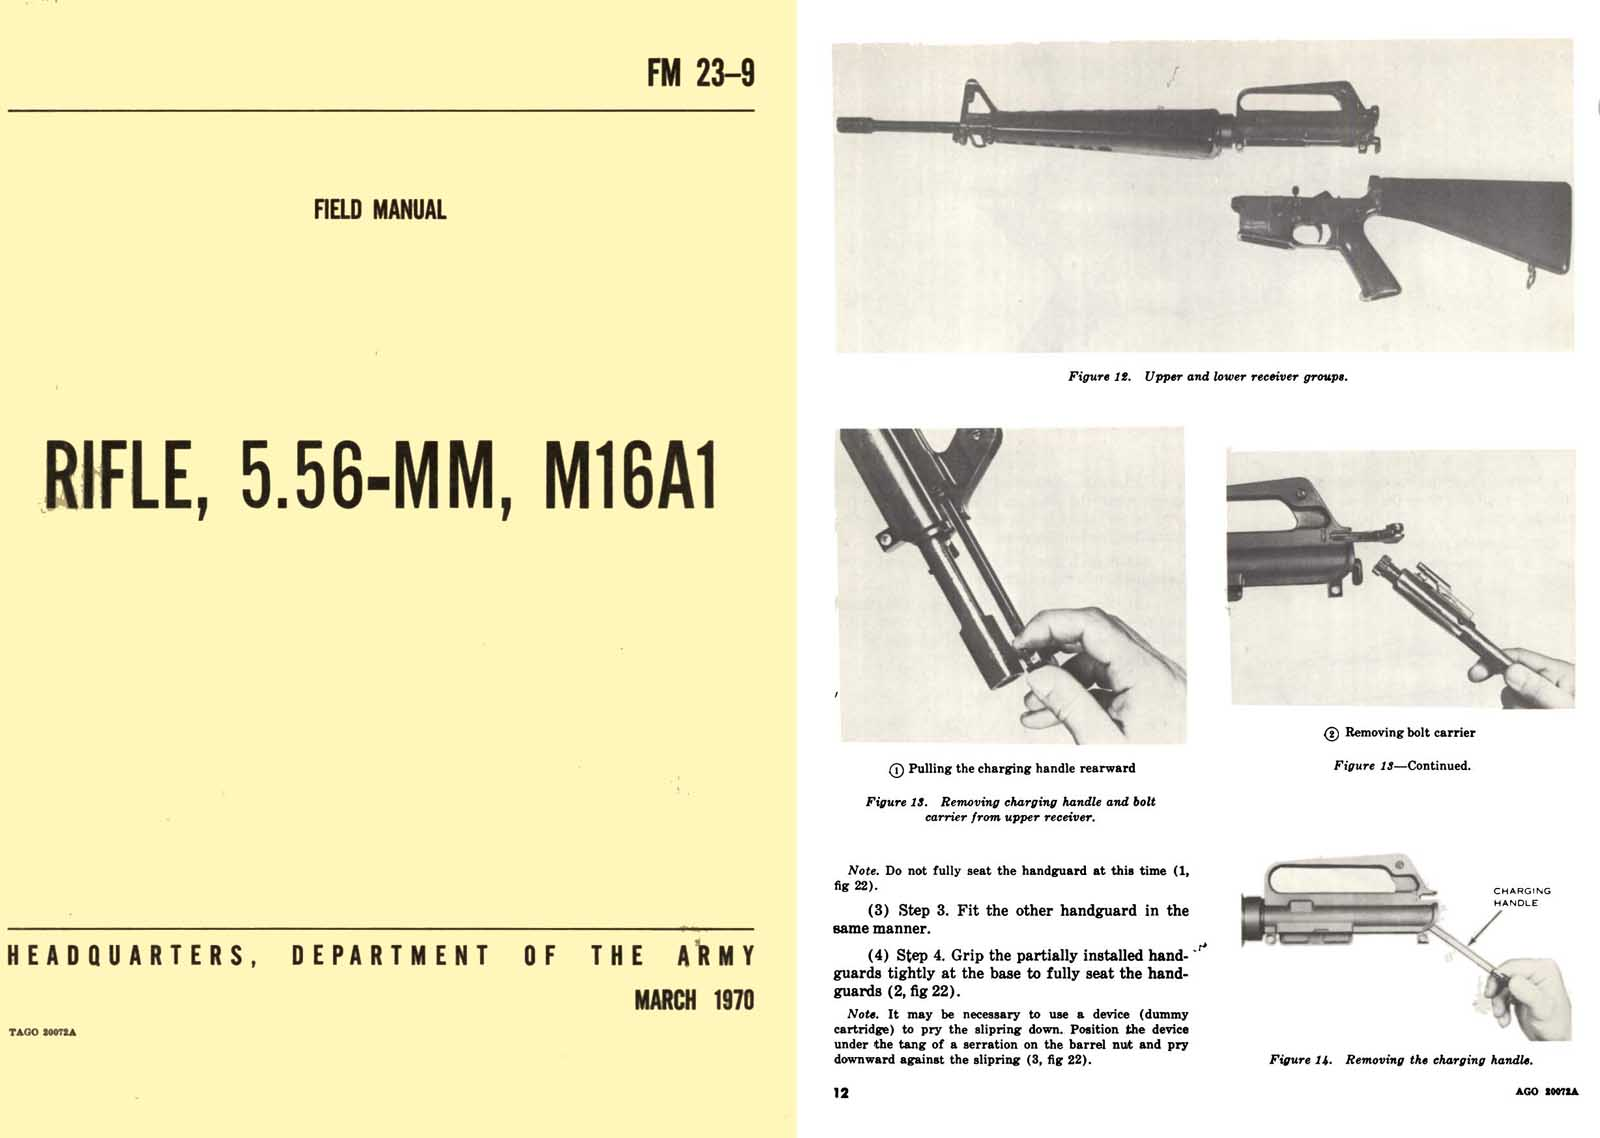 Rifle, M16A1 5.56MM 1970 Field Manual FM 23-9